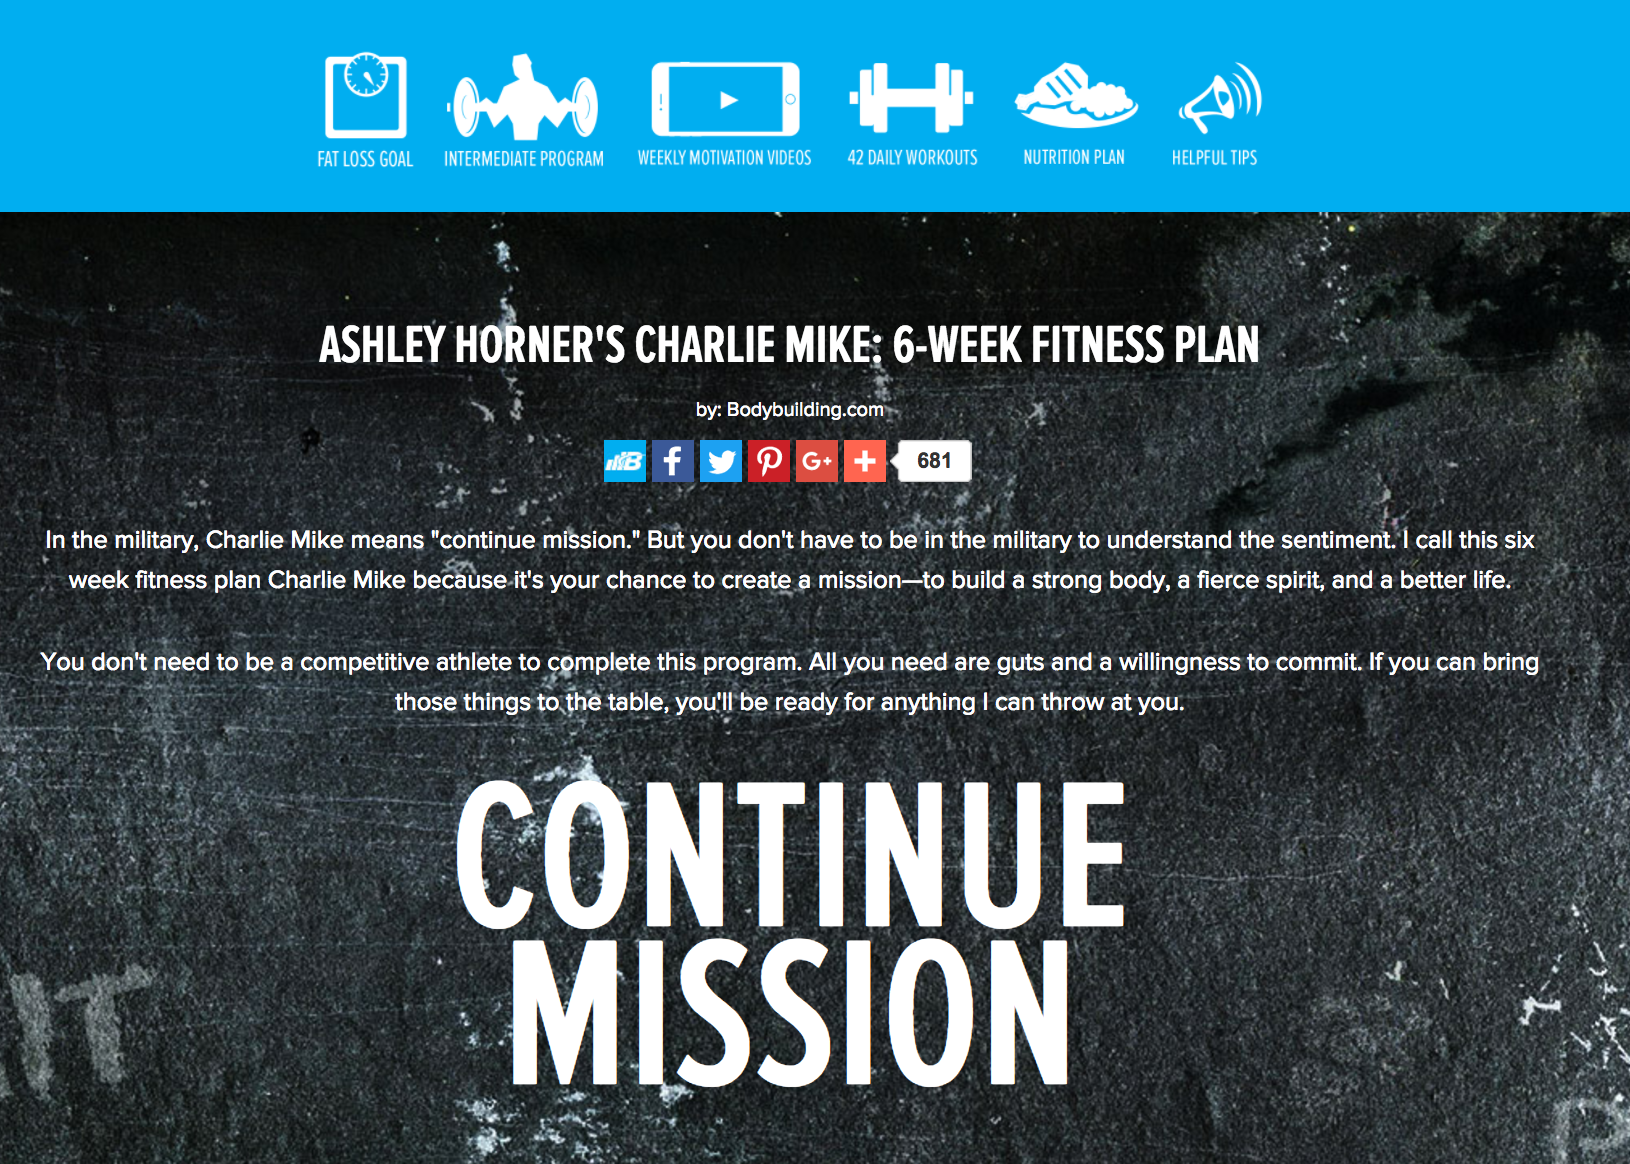 NLA's Charlie Mike Trainer   I wrote copy for the homepage users visit when they start the 6-week program.